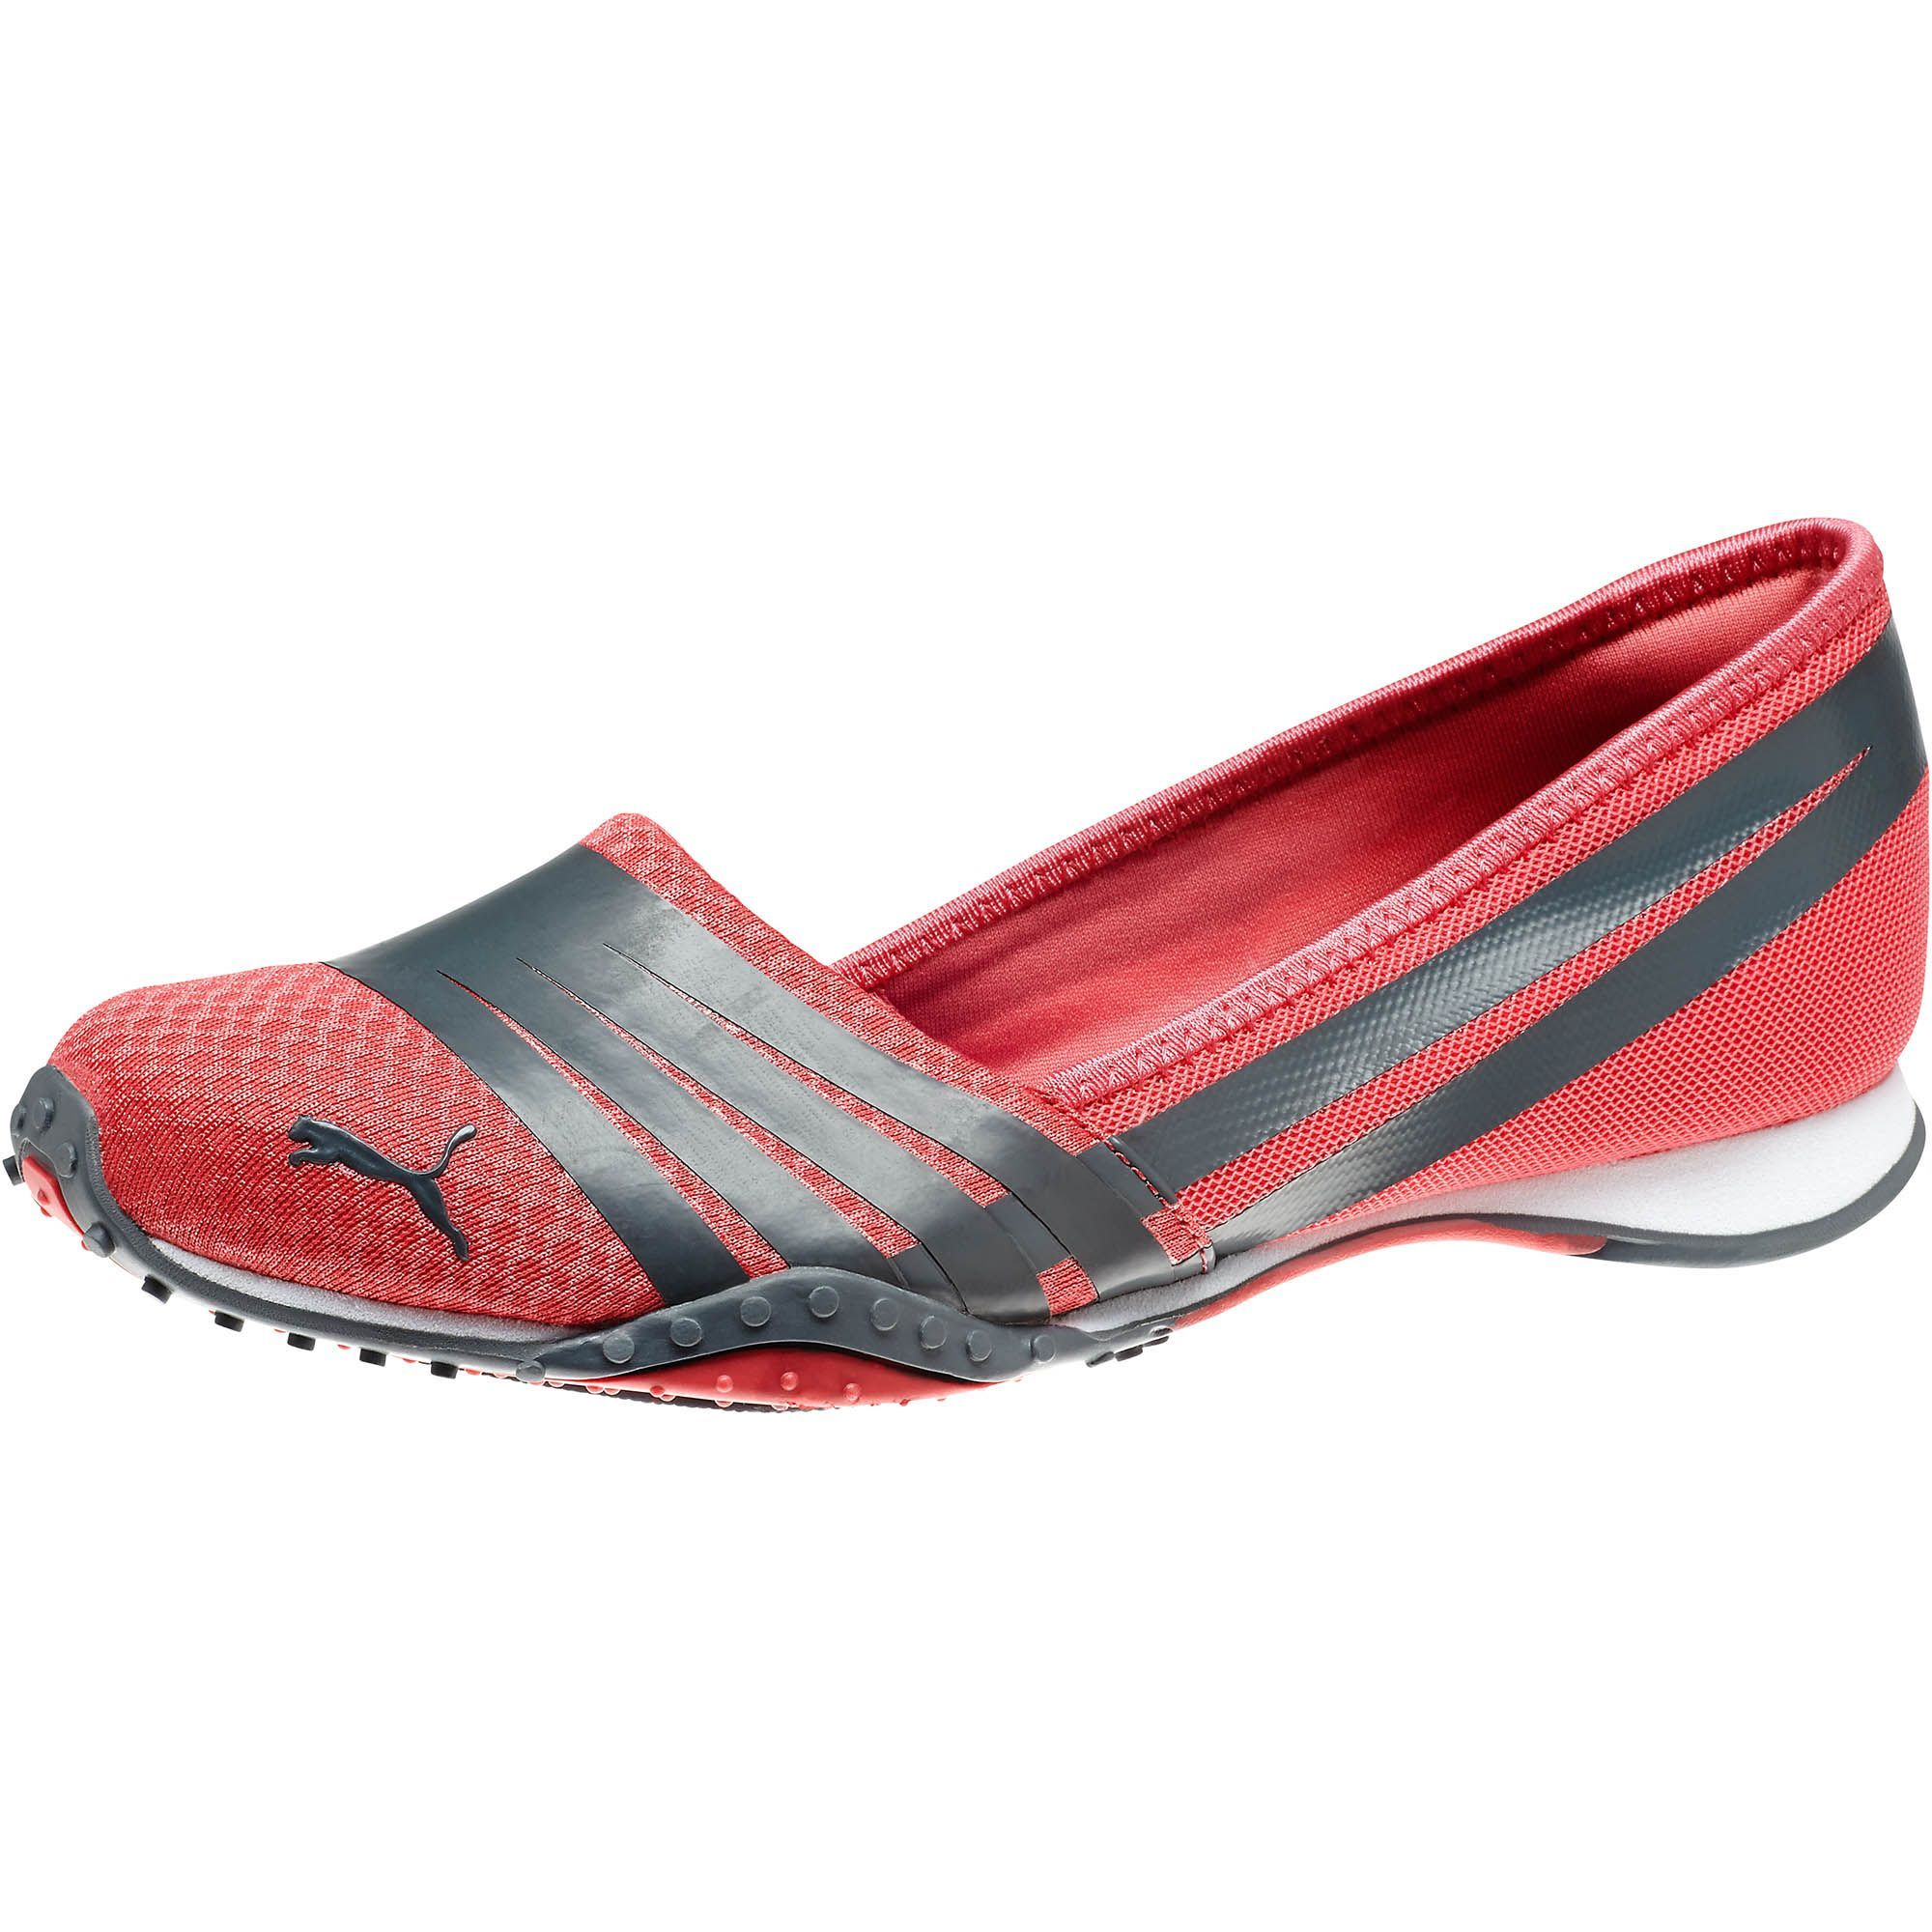 PUMA Asha Alt 2 Womens SlipOn Shoes   from